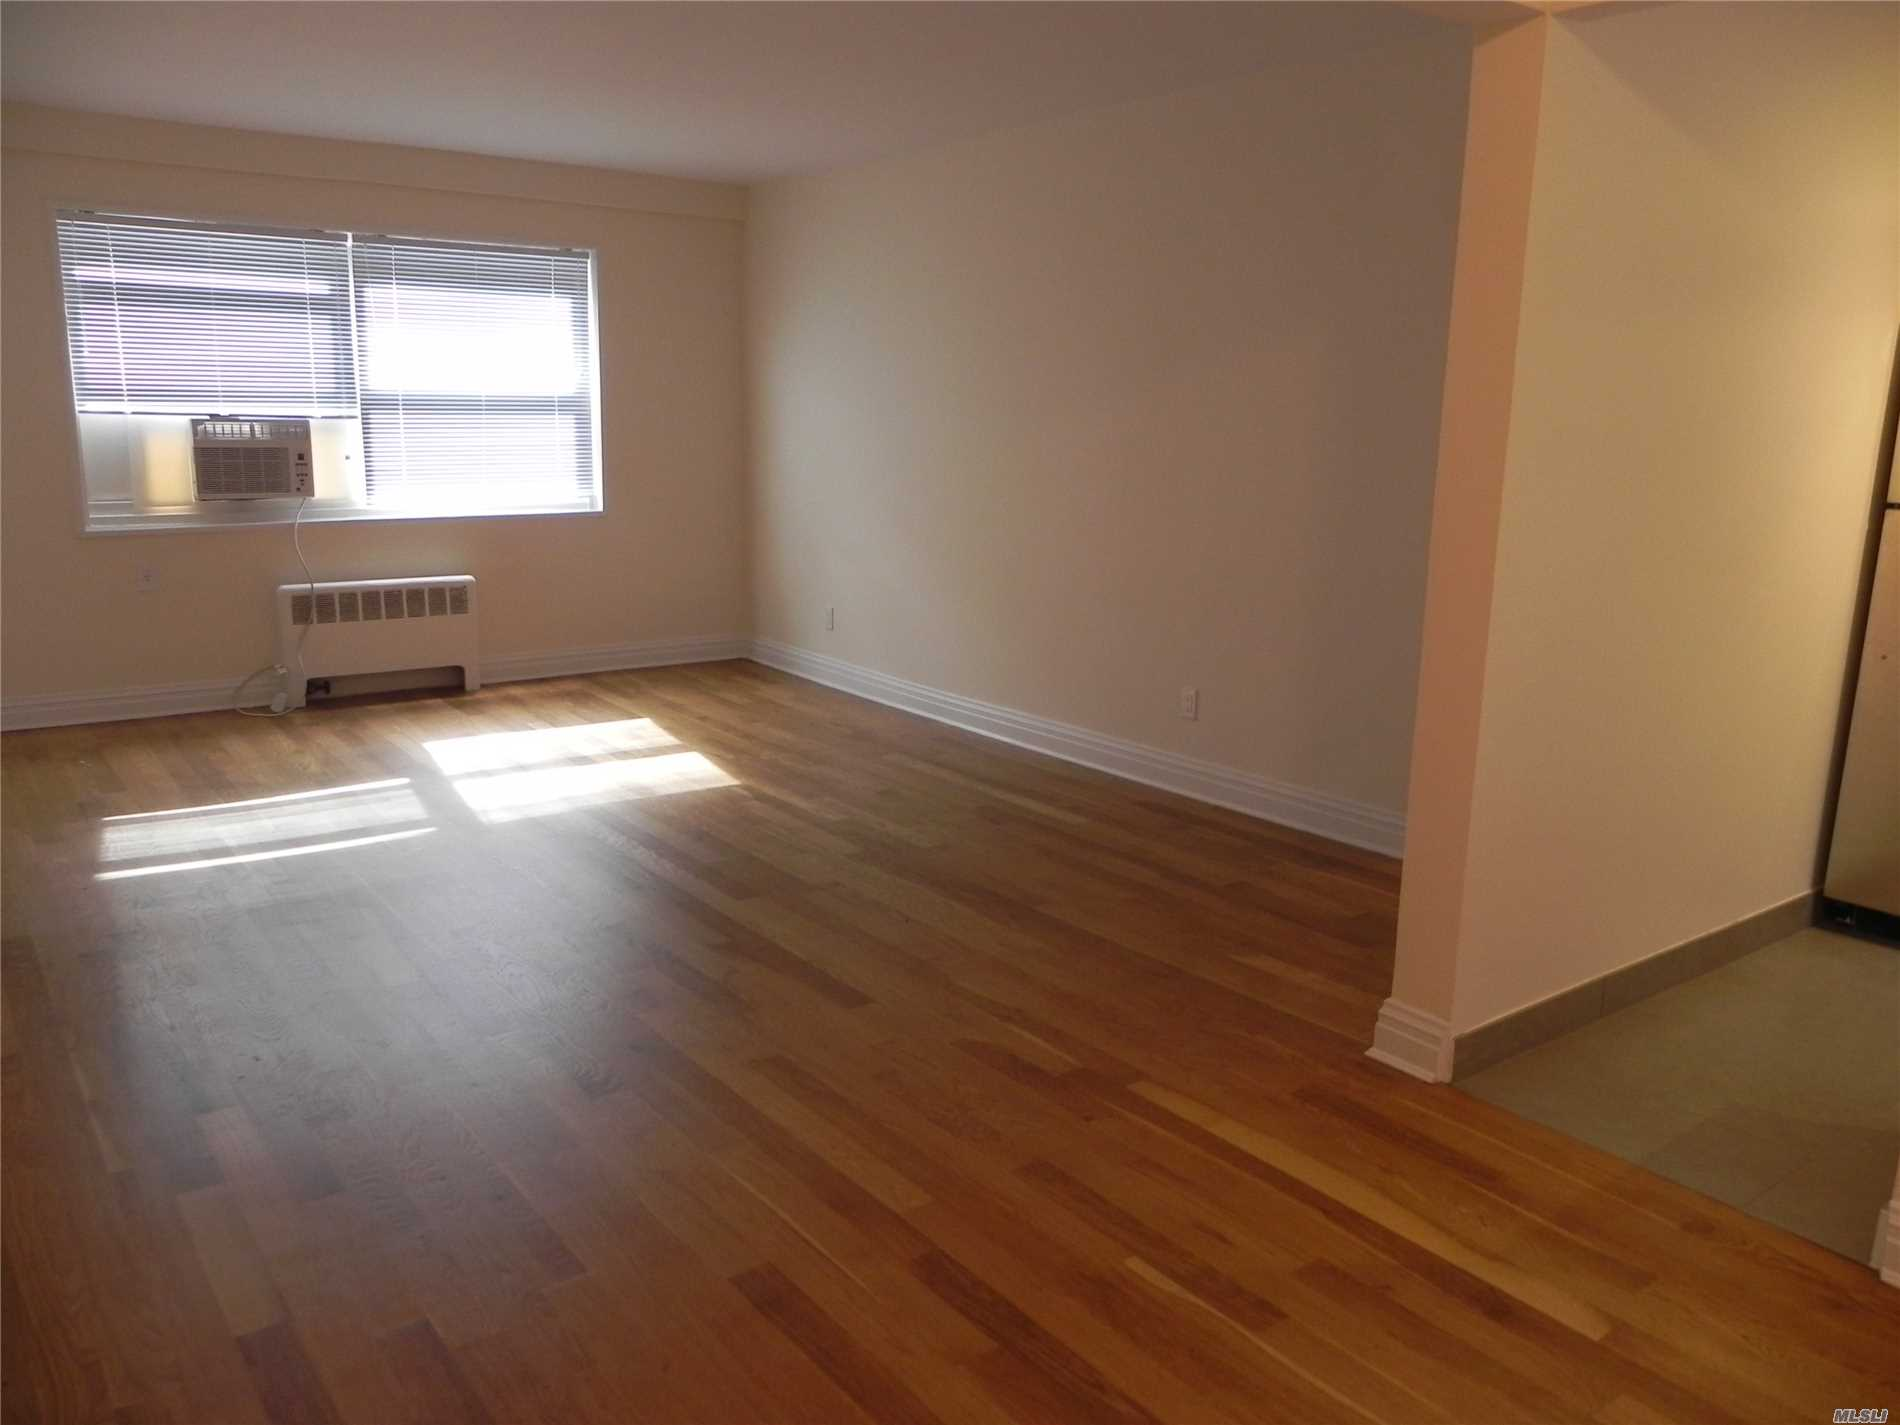 Great Neck. Large 1 Bedroom/1 Bath Apartment With Hardwood Floors Throughout, Beautiful New Bath And Renovated Windowed Kitchen (Stainless Steel Appliances, Gas Cooking, And Corian Counter-Tops). Heat Included. Parking Available (Additional $). In Very Close Proximity To Lirr, Shopping, Dining, And Much More.